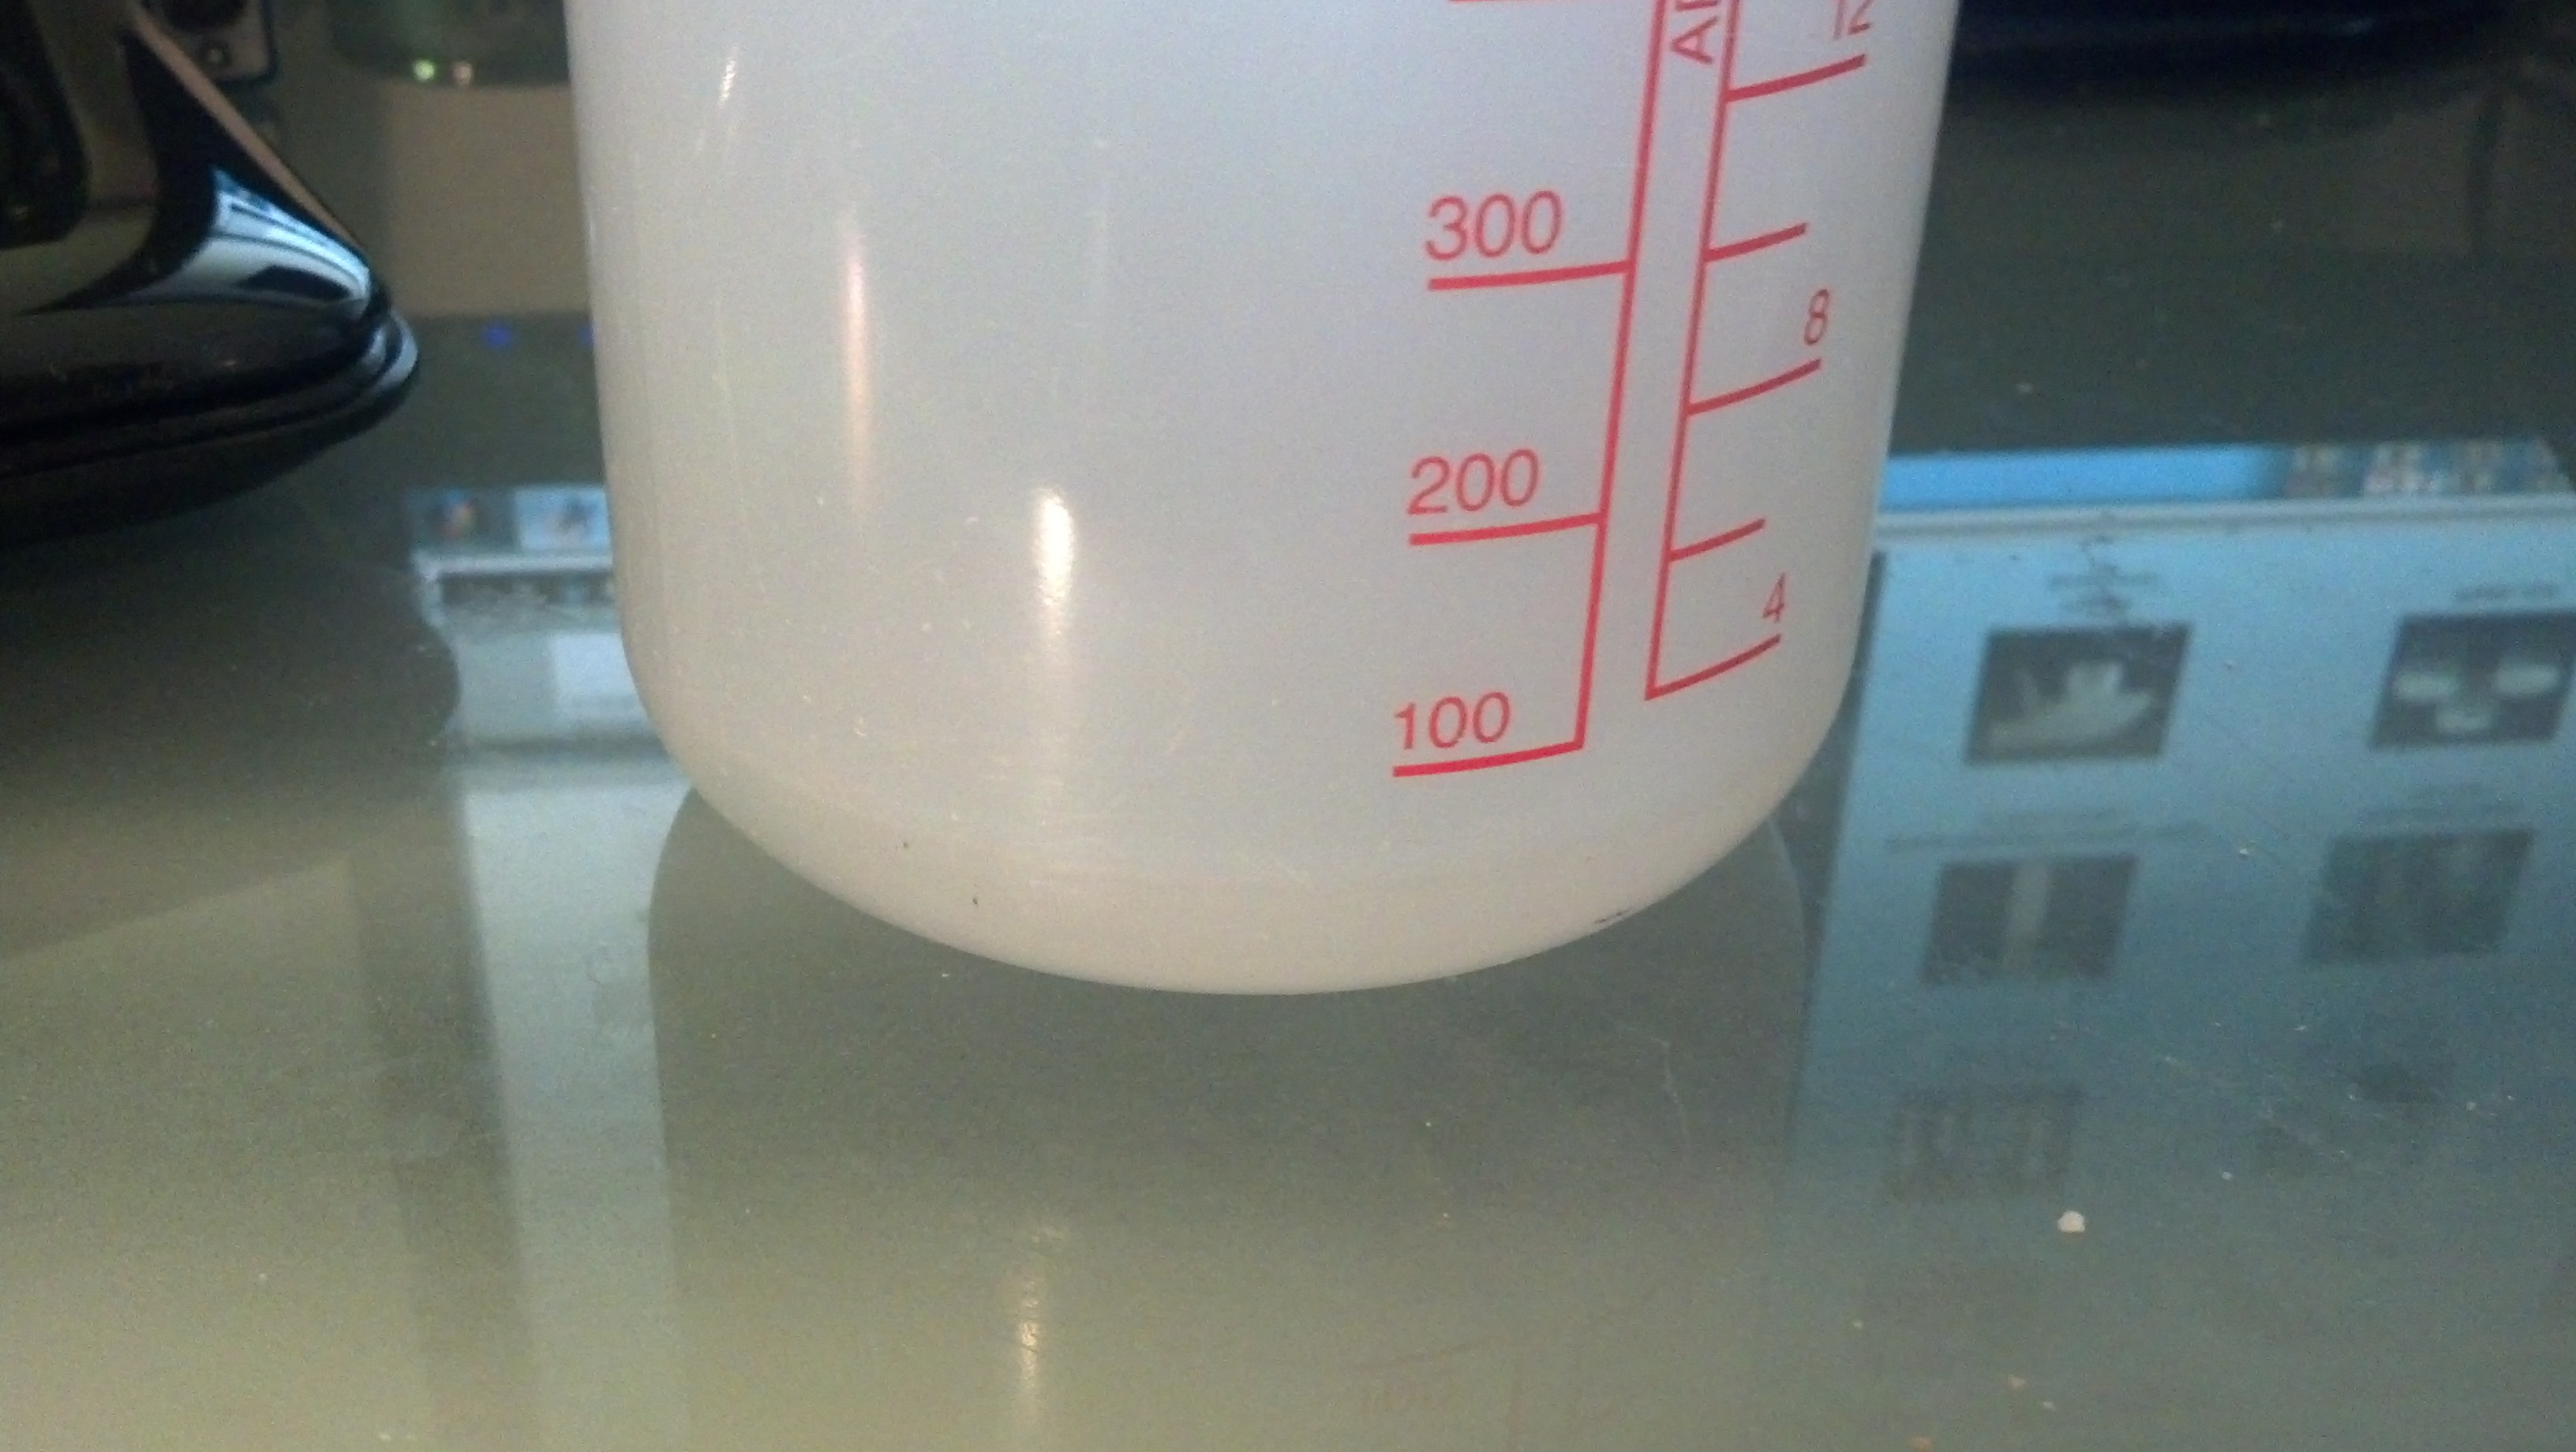 Around 50mL of water